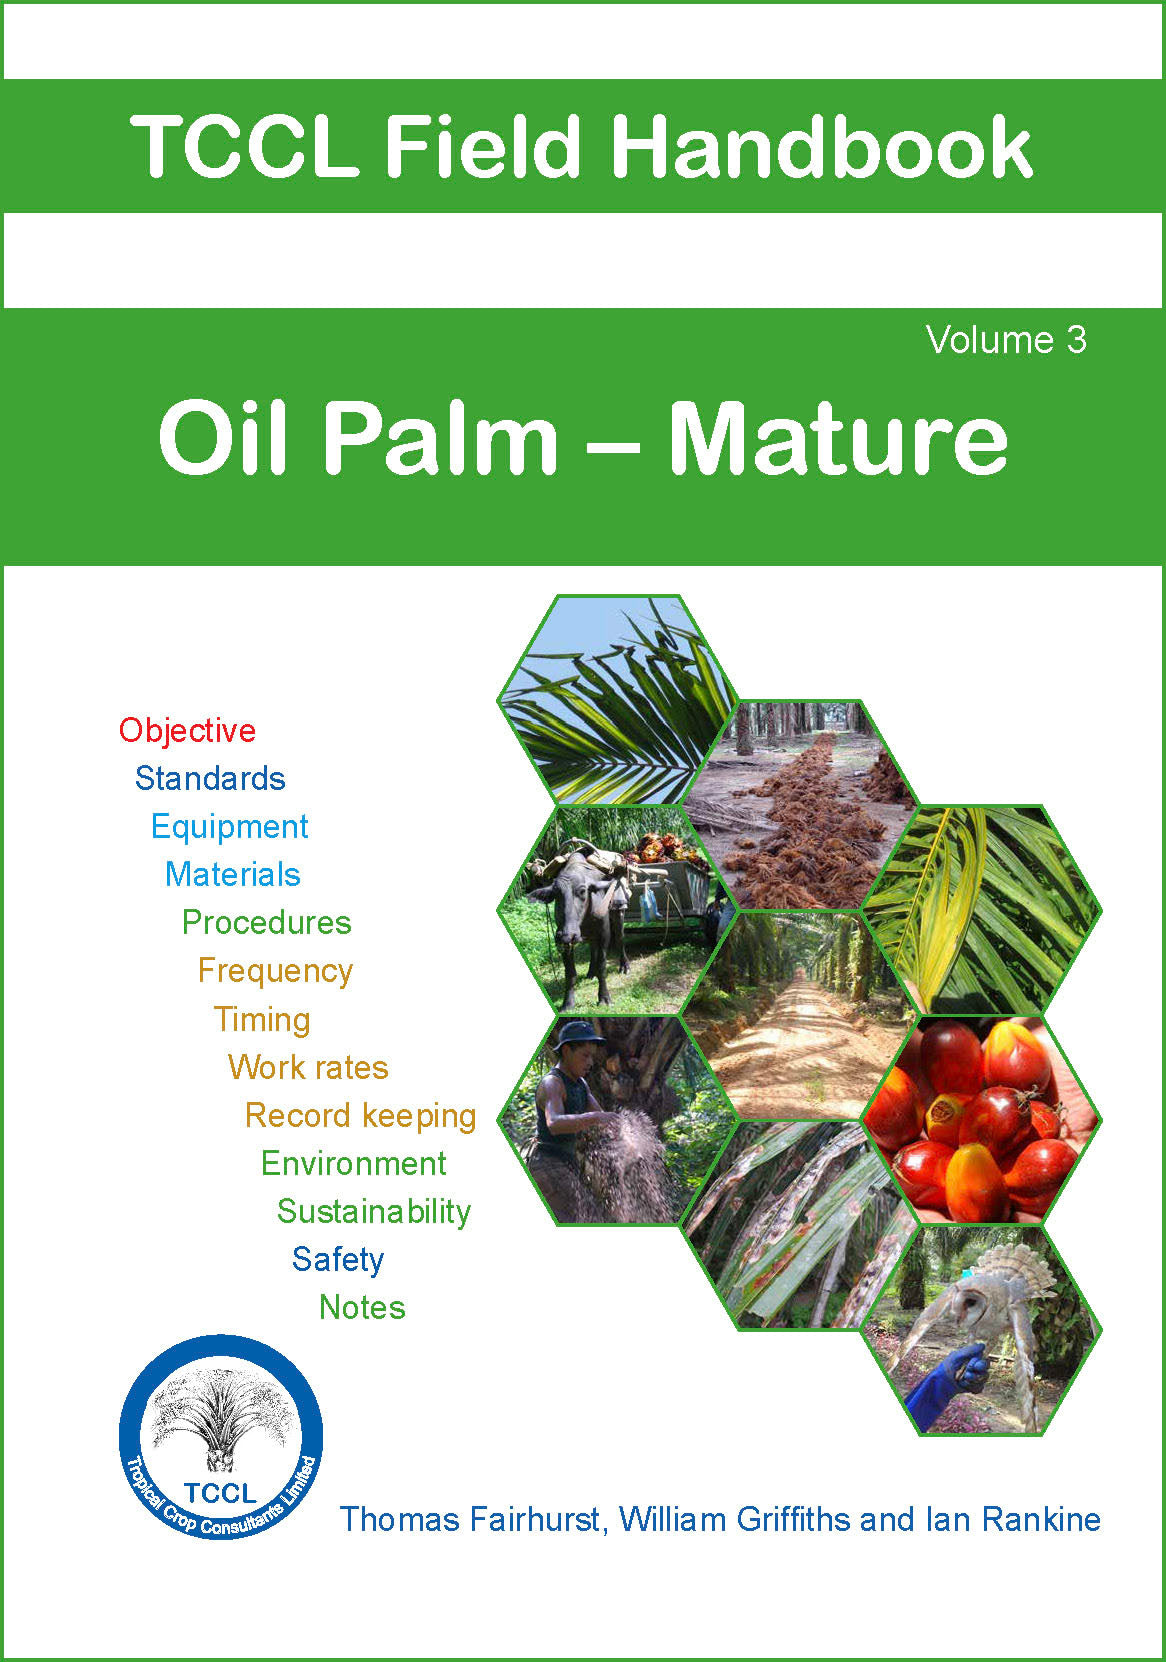 TCCL Oil Palm Handbook - Mature